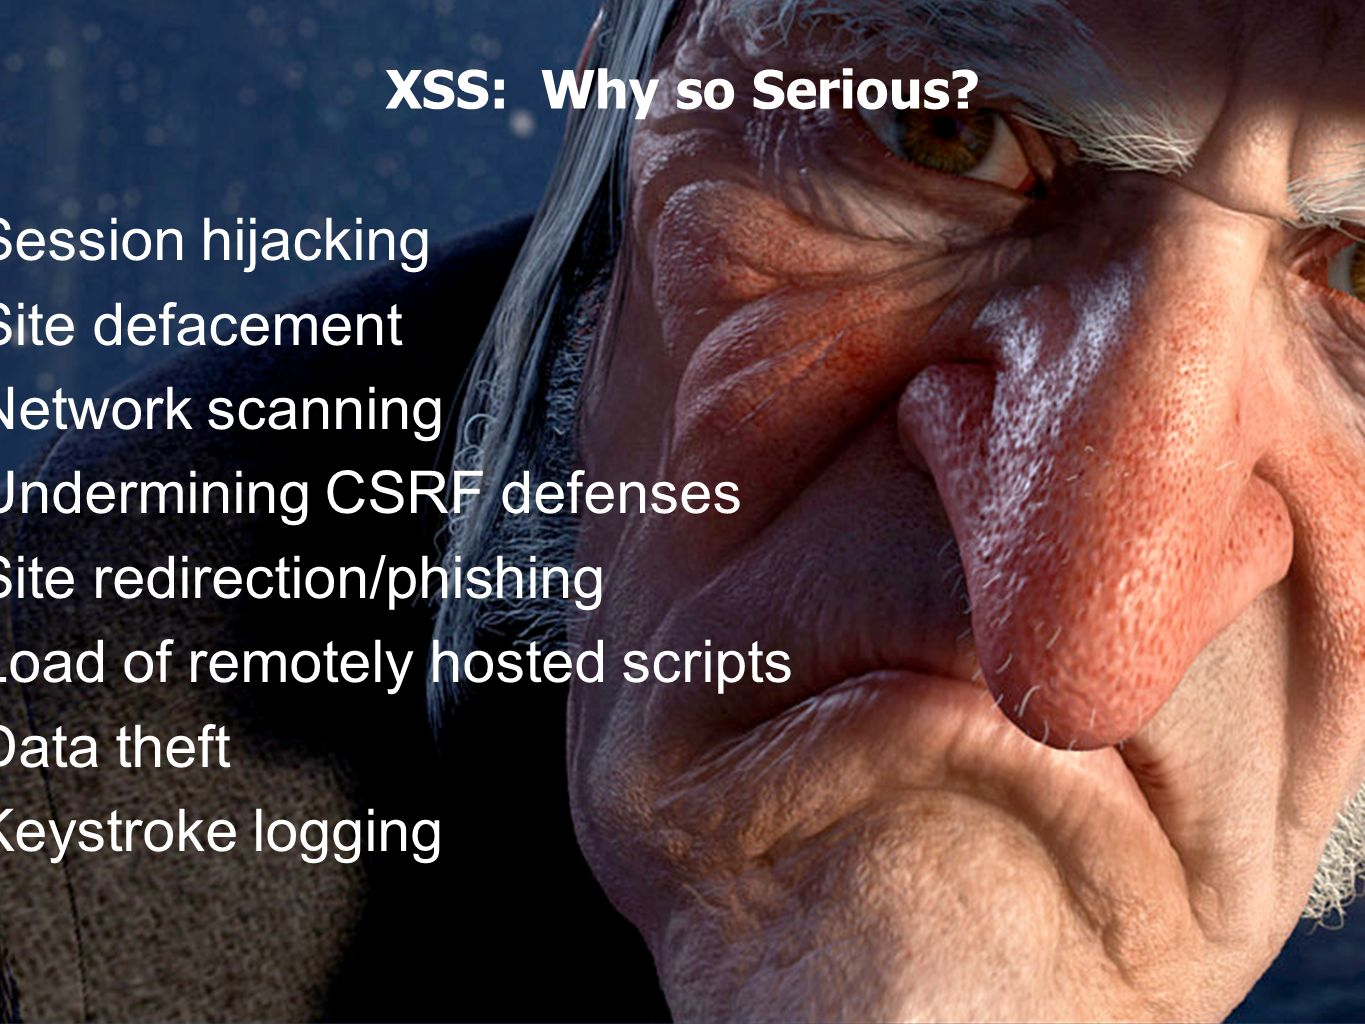 February 2012 Top Ten Controls v1 Eoin Keary and Jim Manico Page 5 (2) XSS Defense by Data Type and Context Data TypeContextDefense Numeric, Type safe languageDoesnt MatterCast to Numeric StringHTML BodyHTML Entity Encode StringHTML Attribute, quotedMinimal Attribute Encoding StringHTML Attribute, unquotedMaximum Attribute Encoding StringGET ParameterURL Encoding StringUntrusted URLURL Validation, avoid javascript: URLs, Attribute encoding, safe URL verification StringCSSStrict structural validation, CSS Hex encoding, good design HTMLHTML BodyHTML Validation (JSoup, AntiSamy, HTML Sanitizer) AnyDOMDOM XSS Cheat sheet Untrusted JavaScriptAnySandboxing JSONClient parse timeJSON.parse() or json2.js